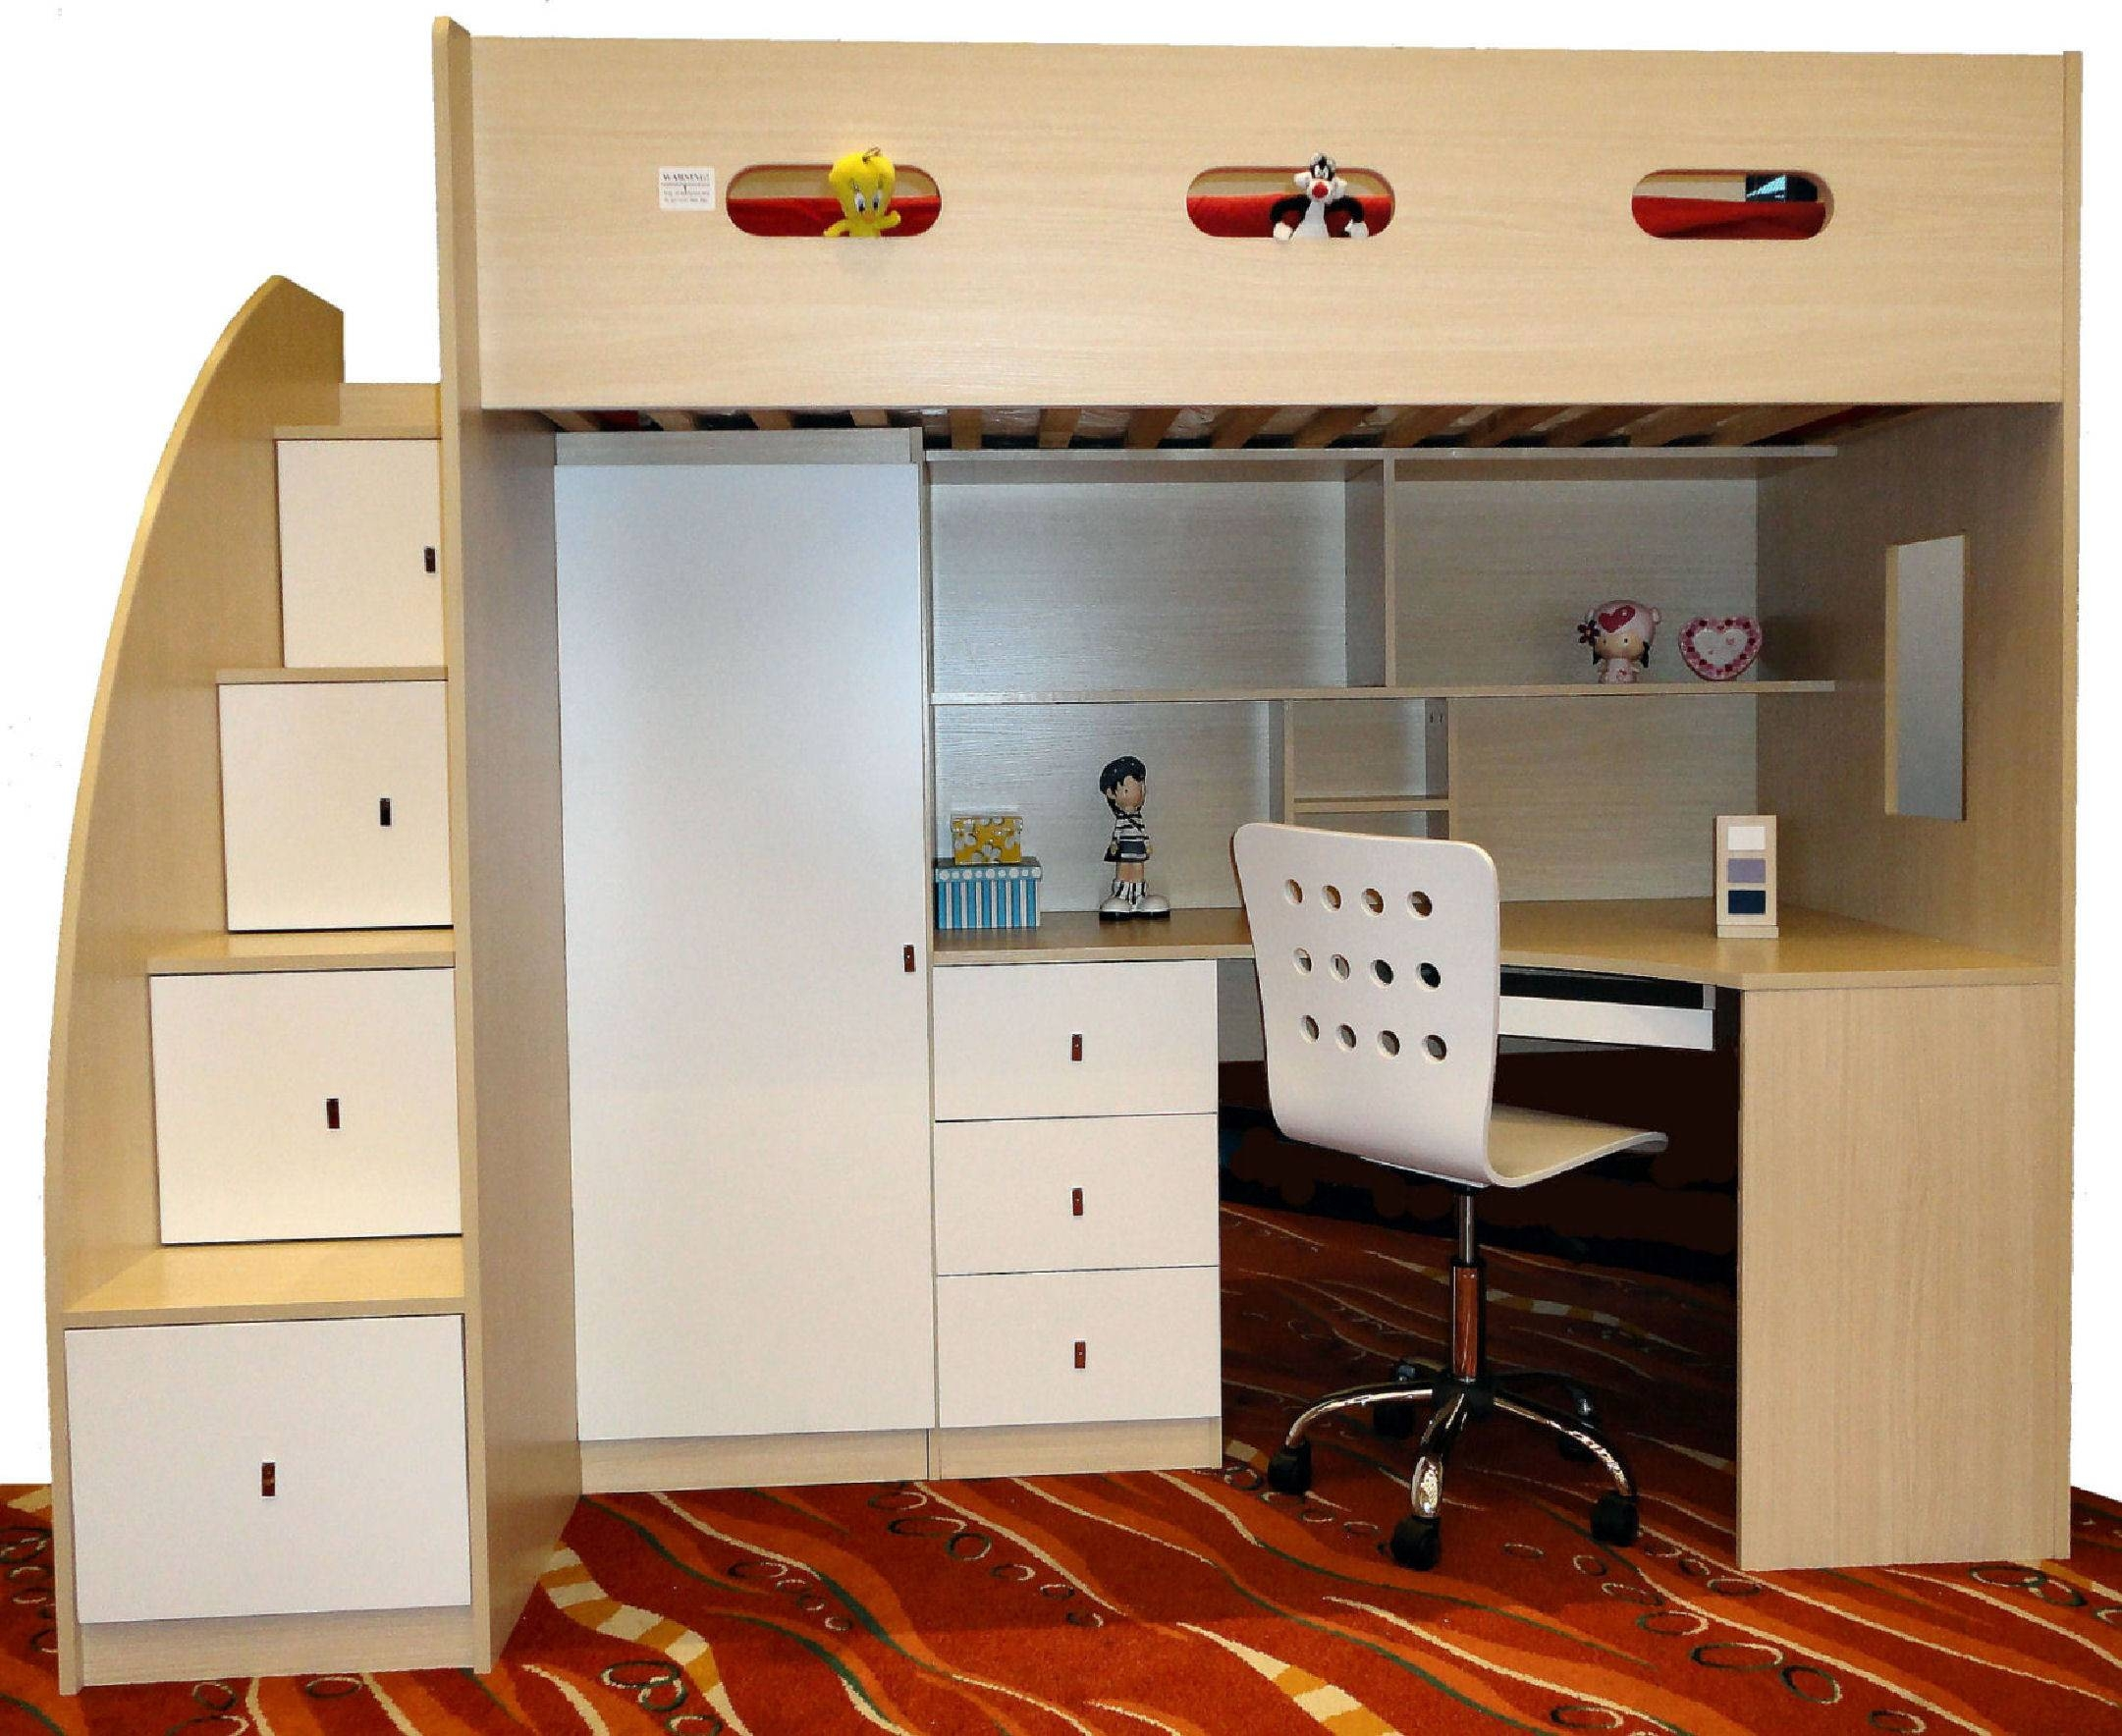 Loft Beds : Bunk Bed With Wardrobe Underneath 117 Kids Furniture intended for Childrens Bed With Wardrobes Underneath (Image 13 of 15)